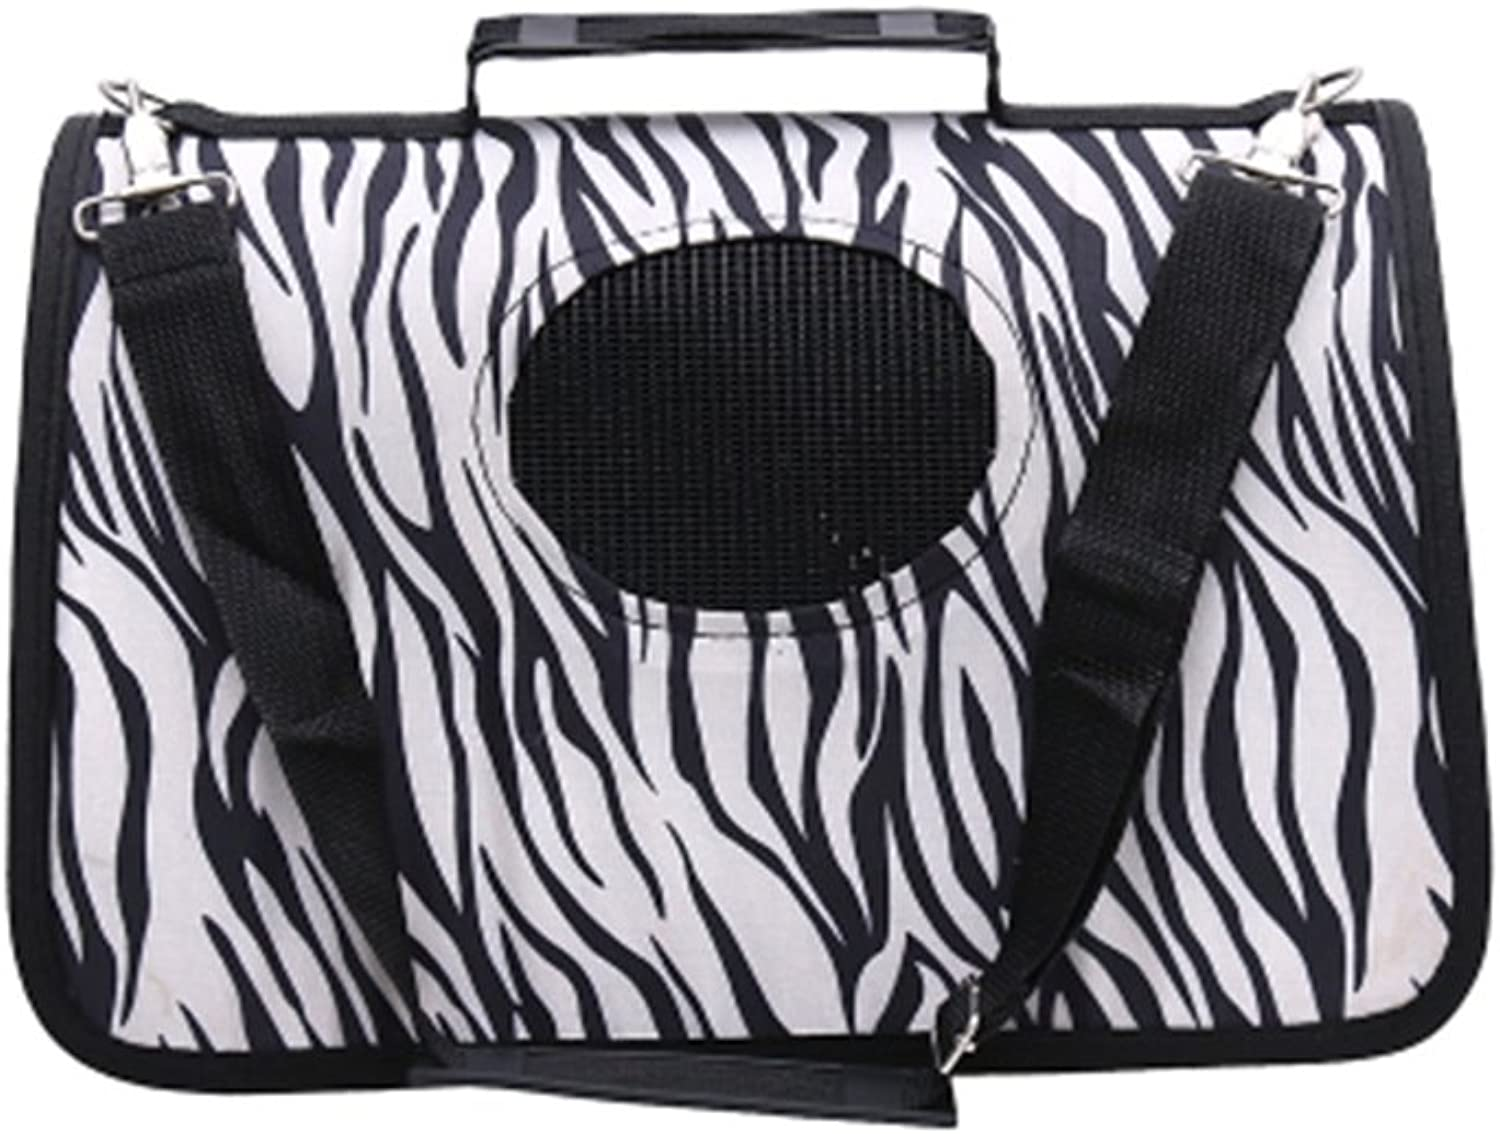 Pet Carrier Soft Sided Travel Bag for Small Dogs & Cats Airline Approved, Zebra